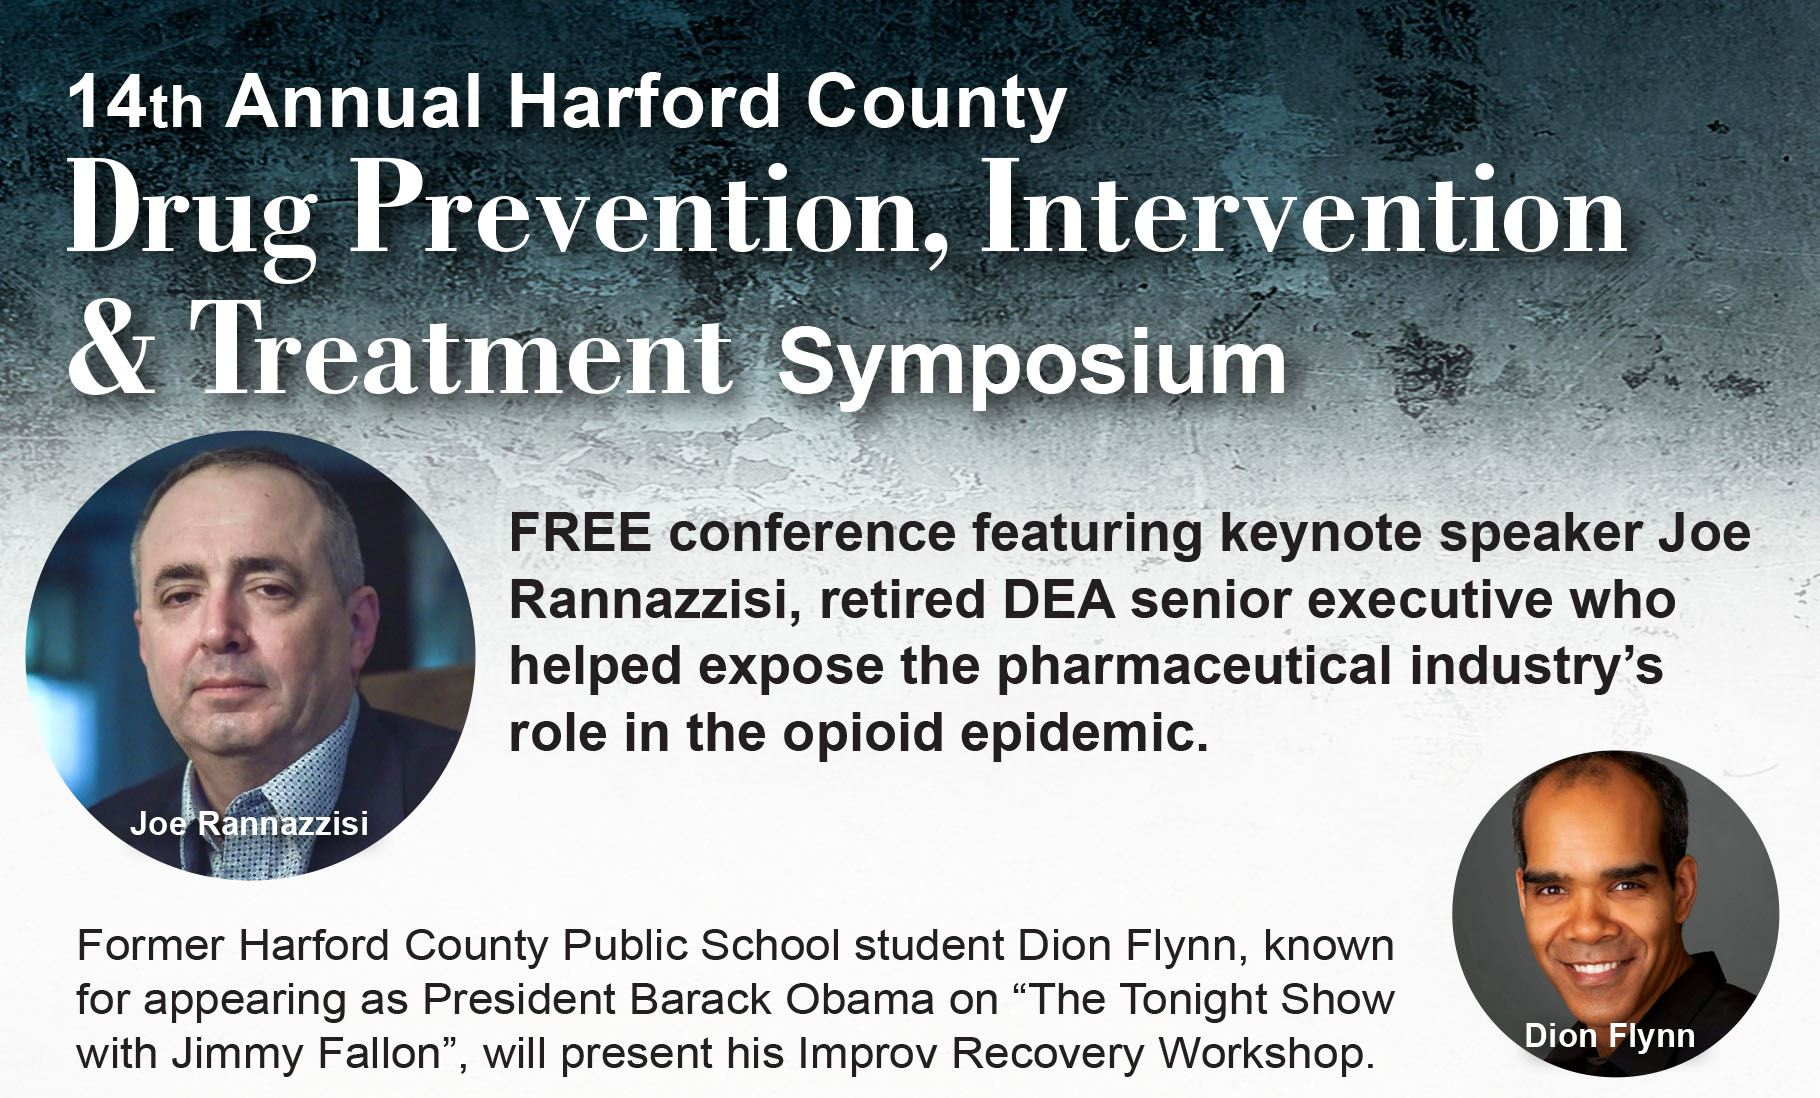 Harford County Drug Prevention, Intervention & Treatment Symposium